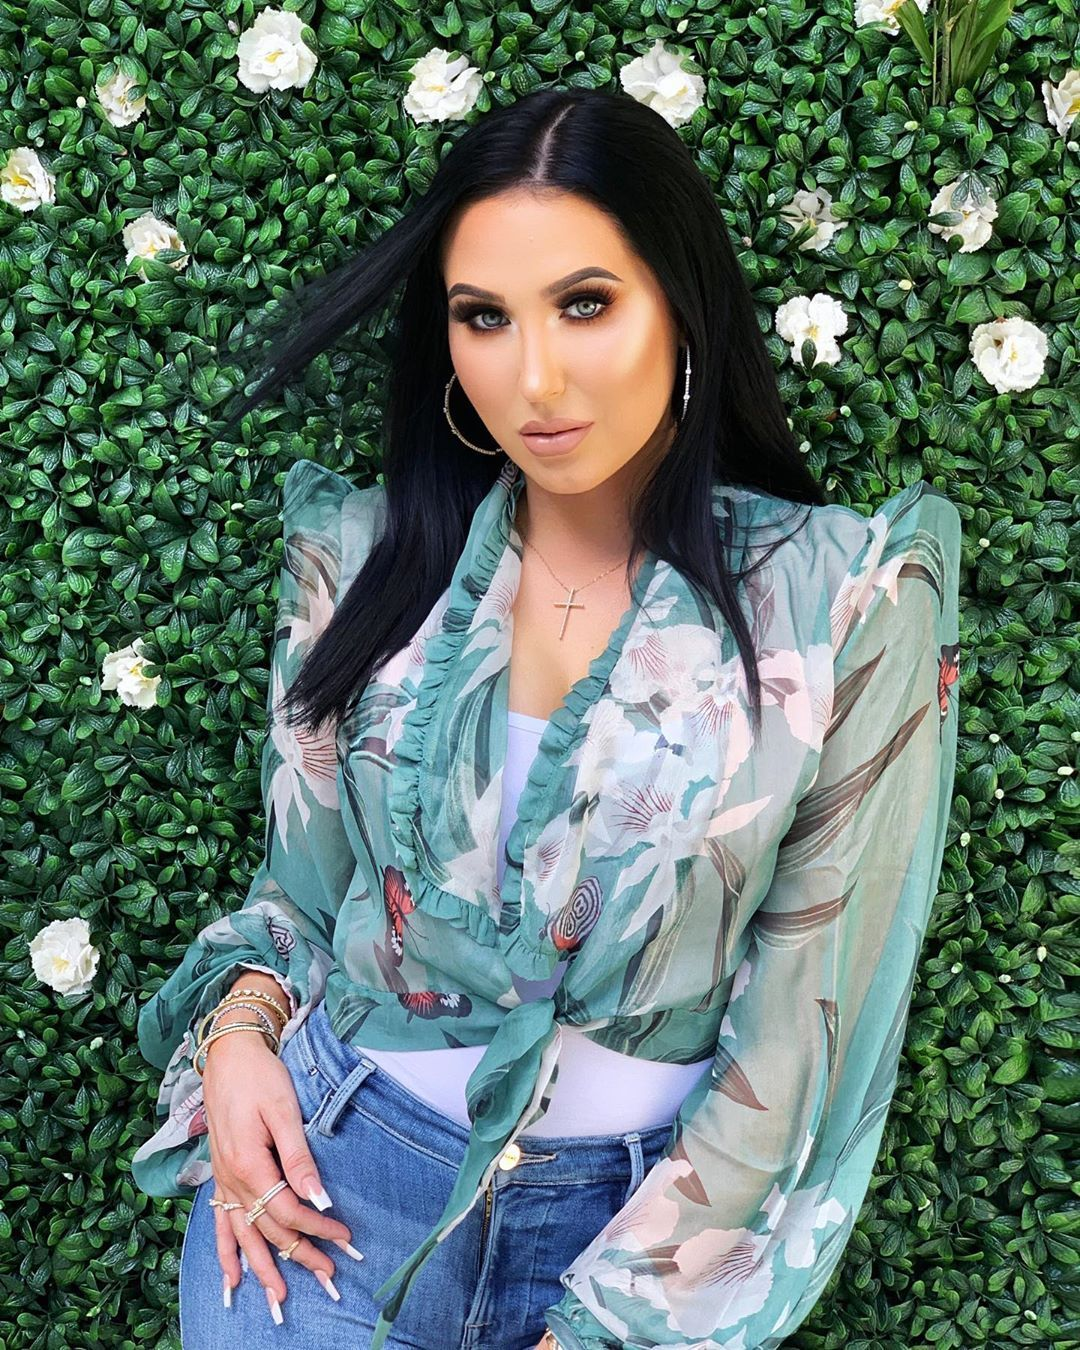 Jaclyn Hill Breaks Her Silence After Her Company Sold Damaged Lipsticks